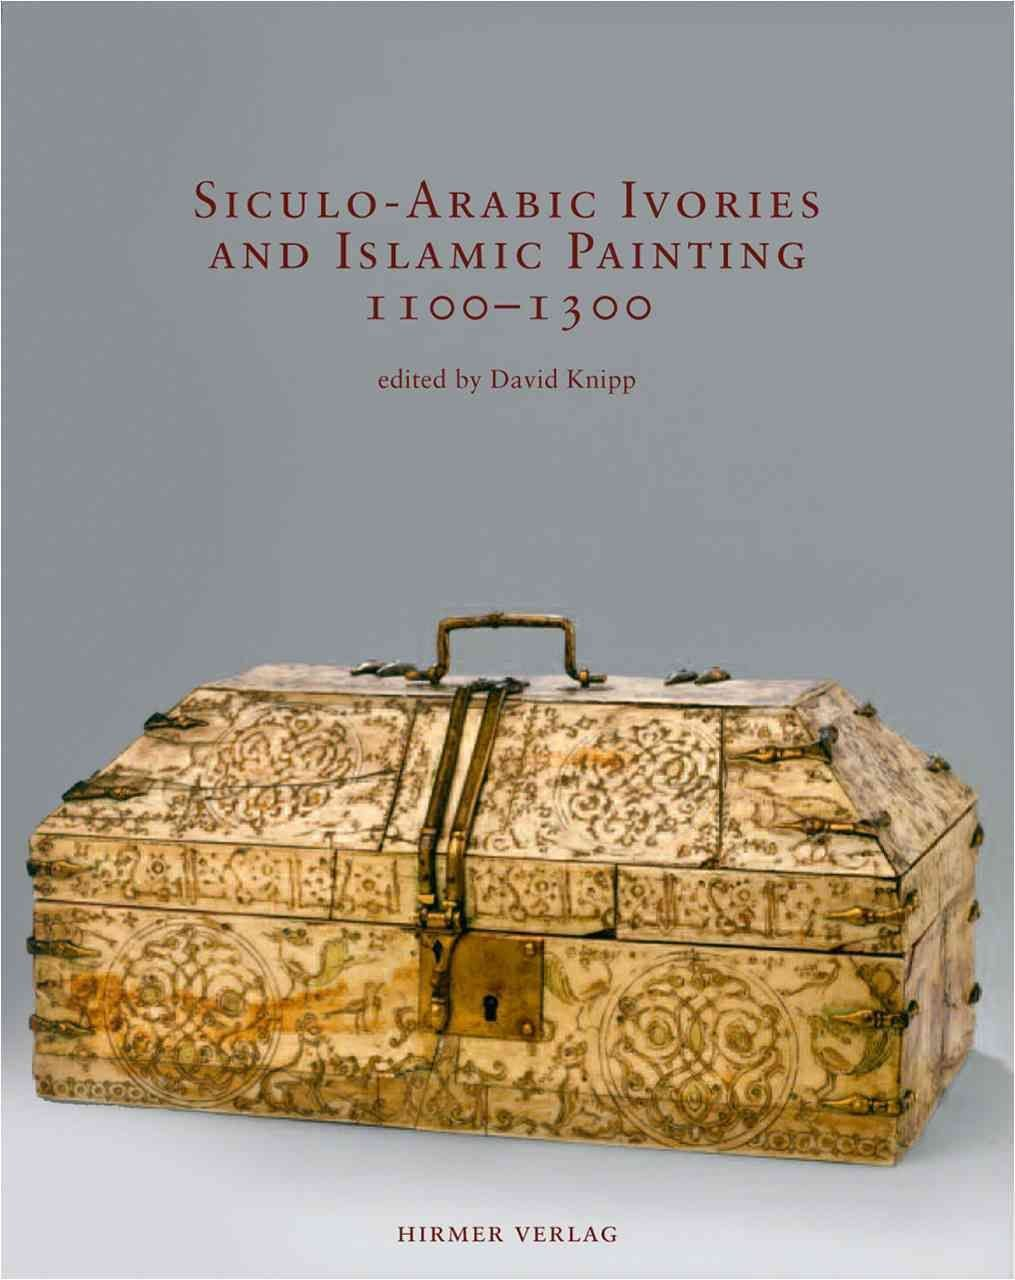 Siculo-Arabic Ivories and Islamic Painting 1100-1300: v. 26 - Sybille Ebert-Schifferer